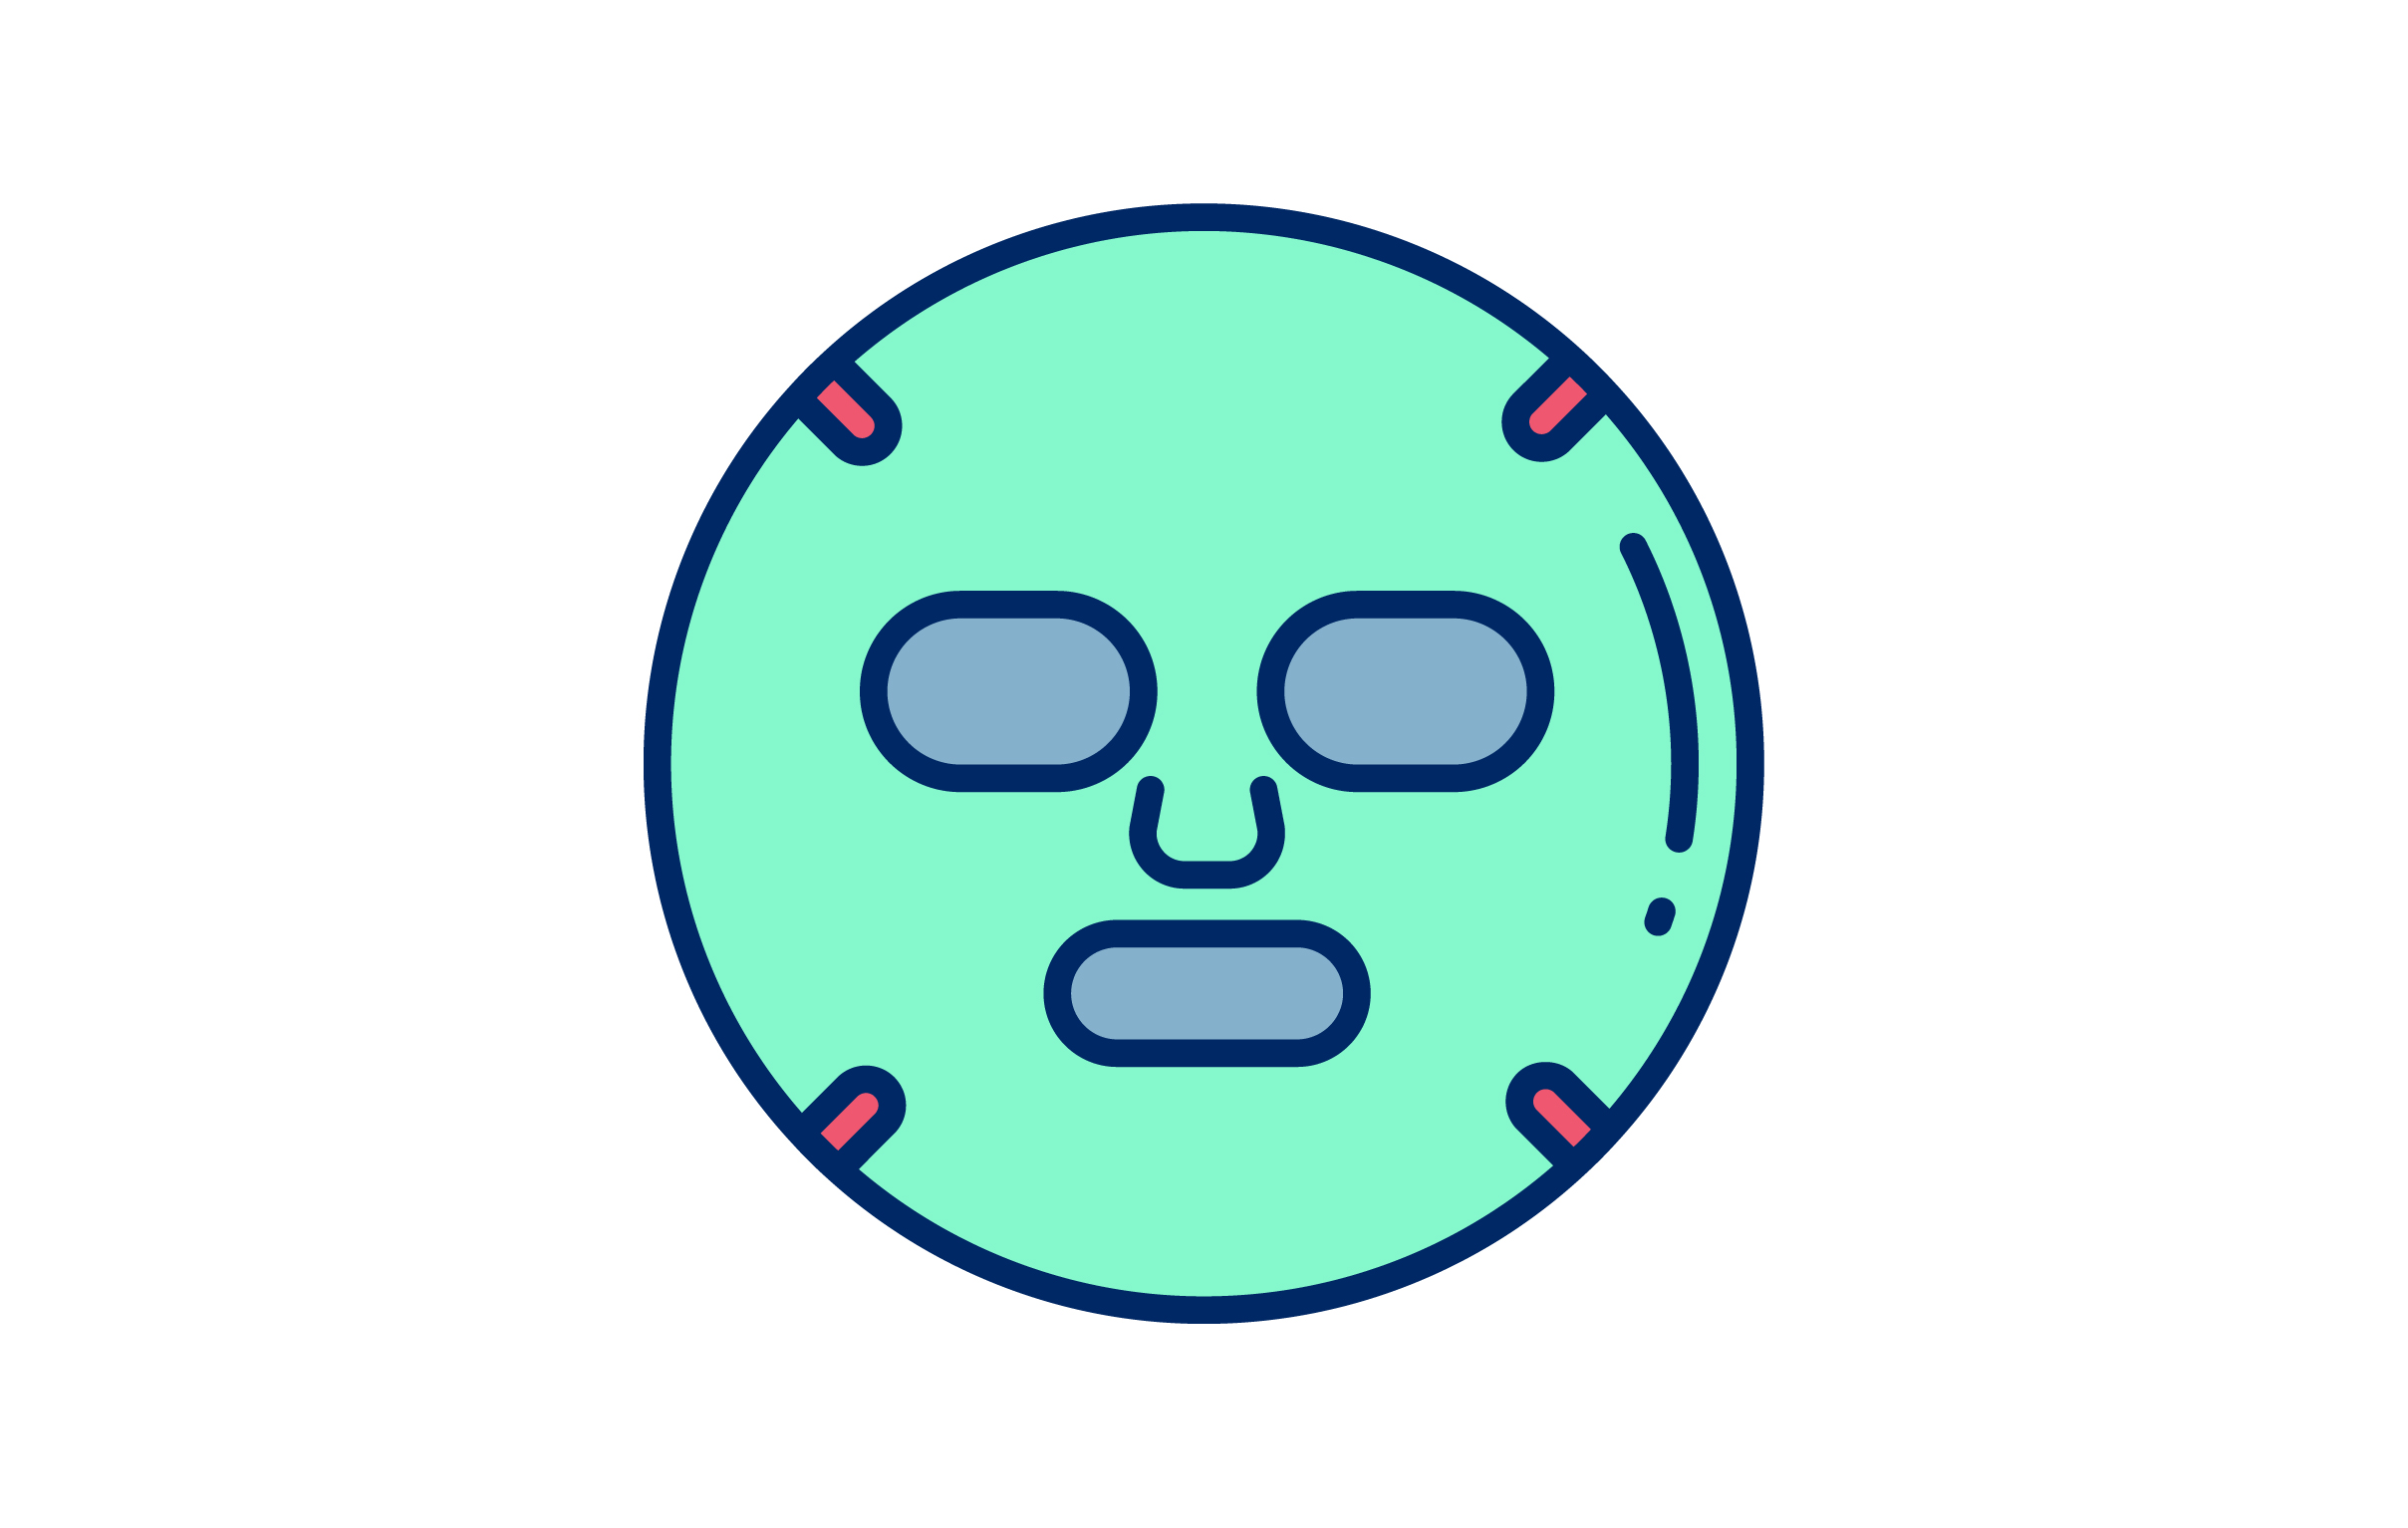 Download Free Facial Mask Graphic By Matfine Creative Fabrica for Cricut Explore, Silhouette and other cutting machines.